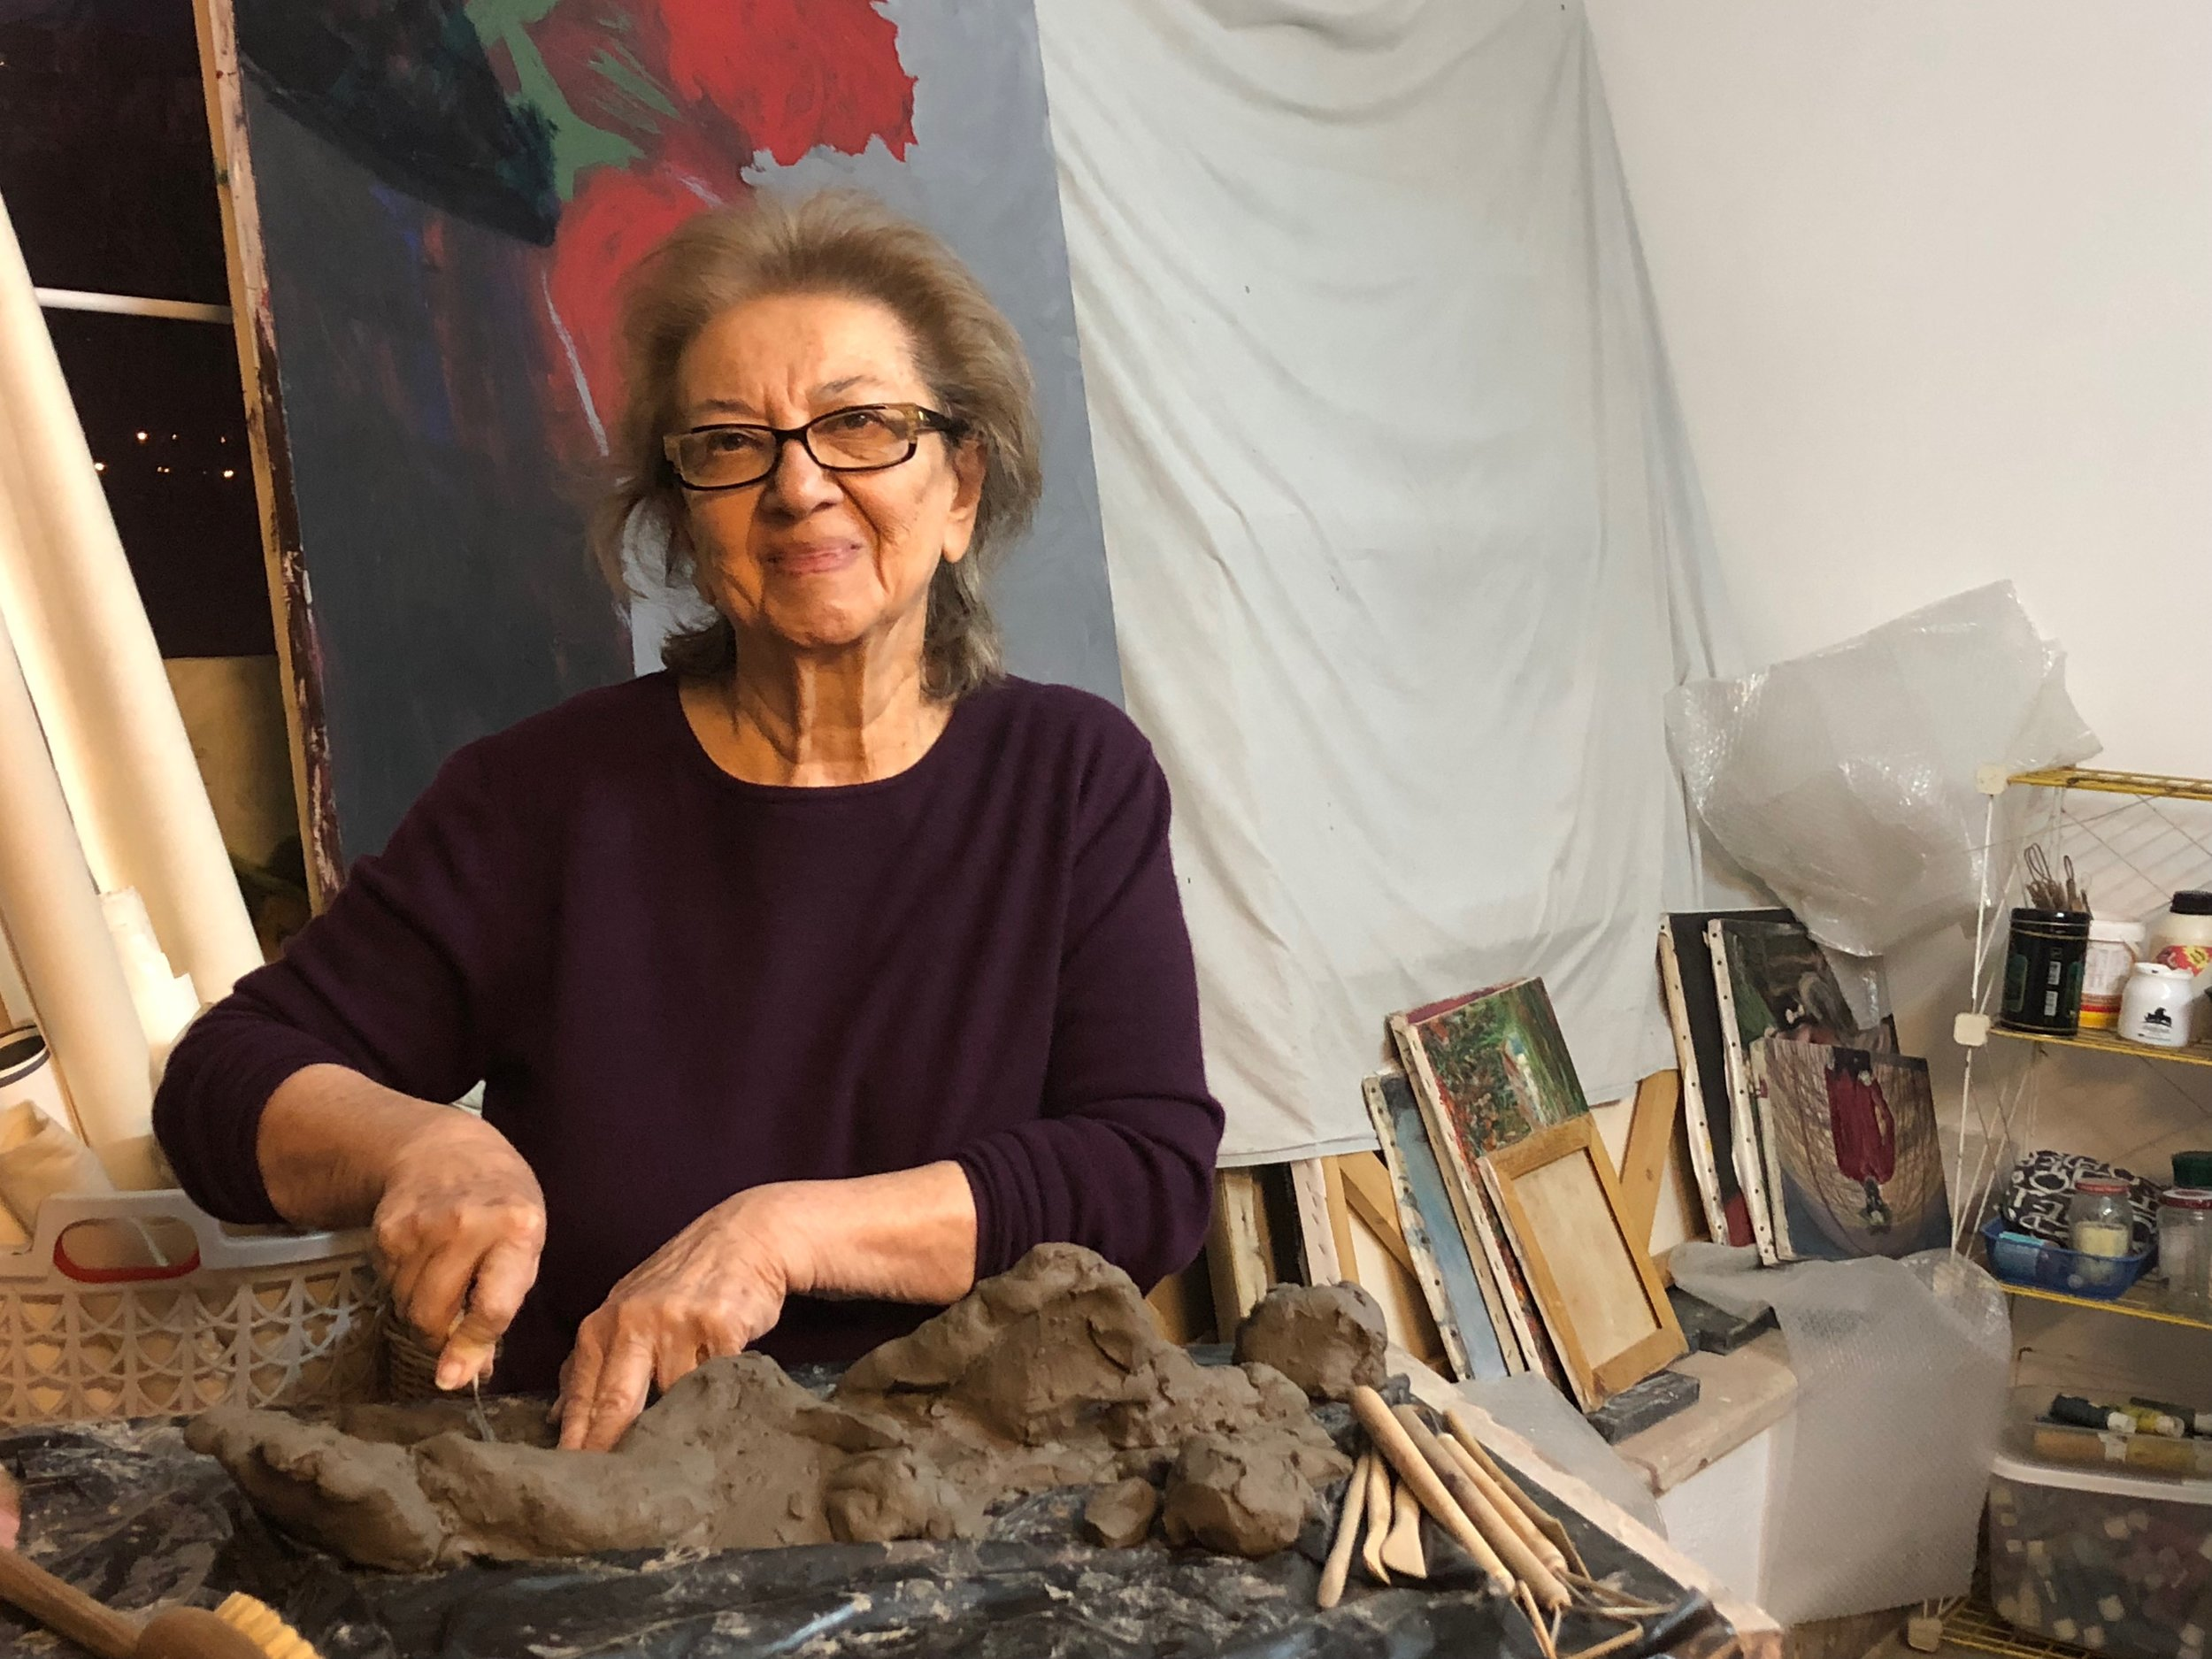 IAWF artist Guity Seif working in her studio